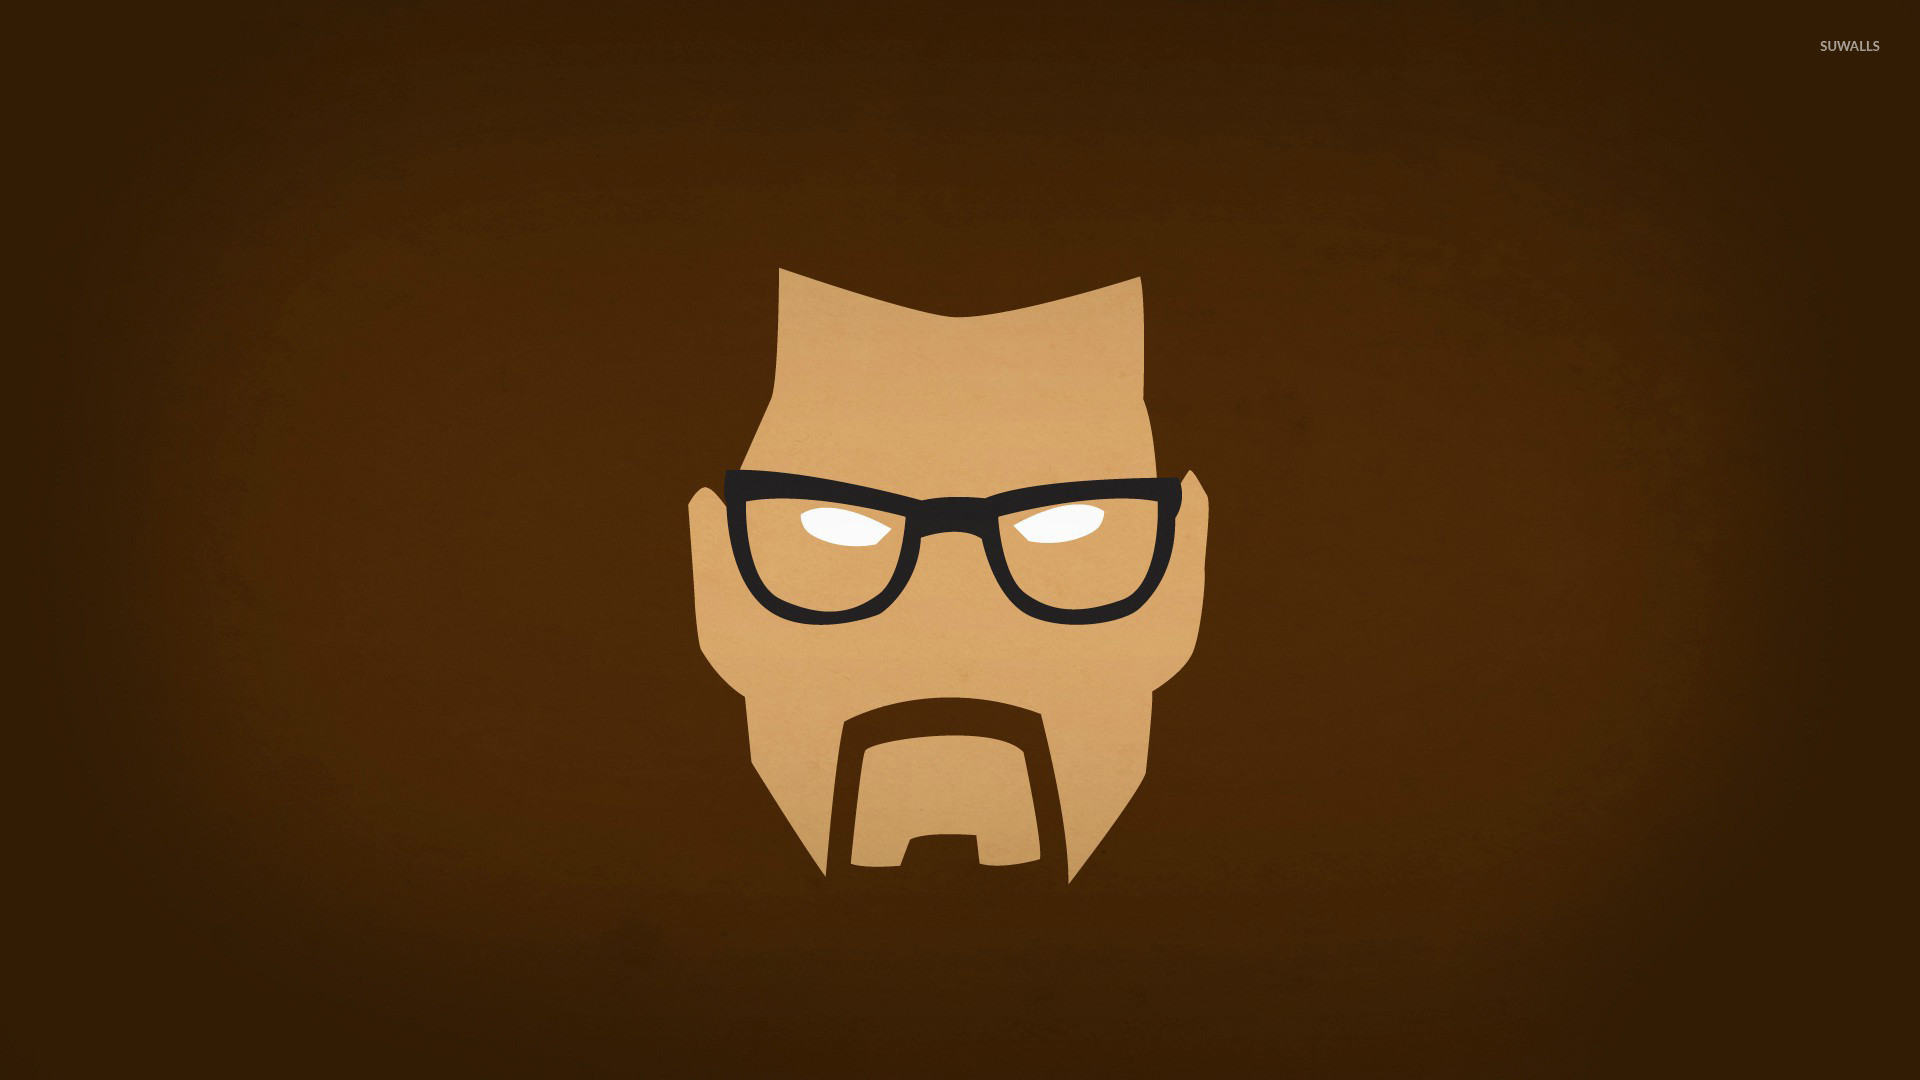 1920x1080 Gordon Freeman - Half-Life 2 [3] wallpaper